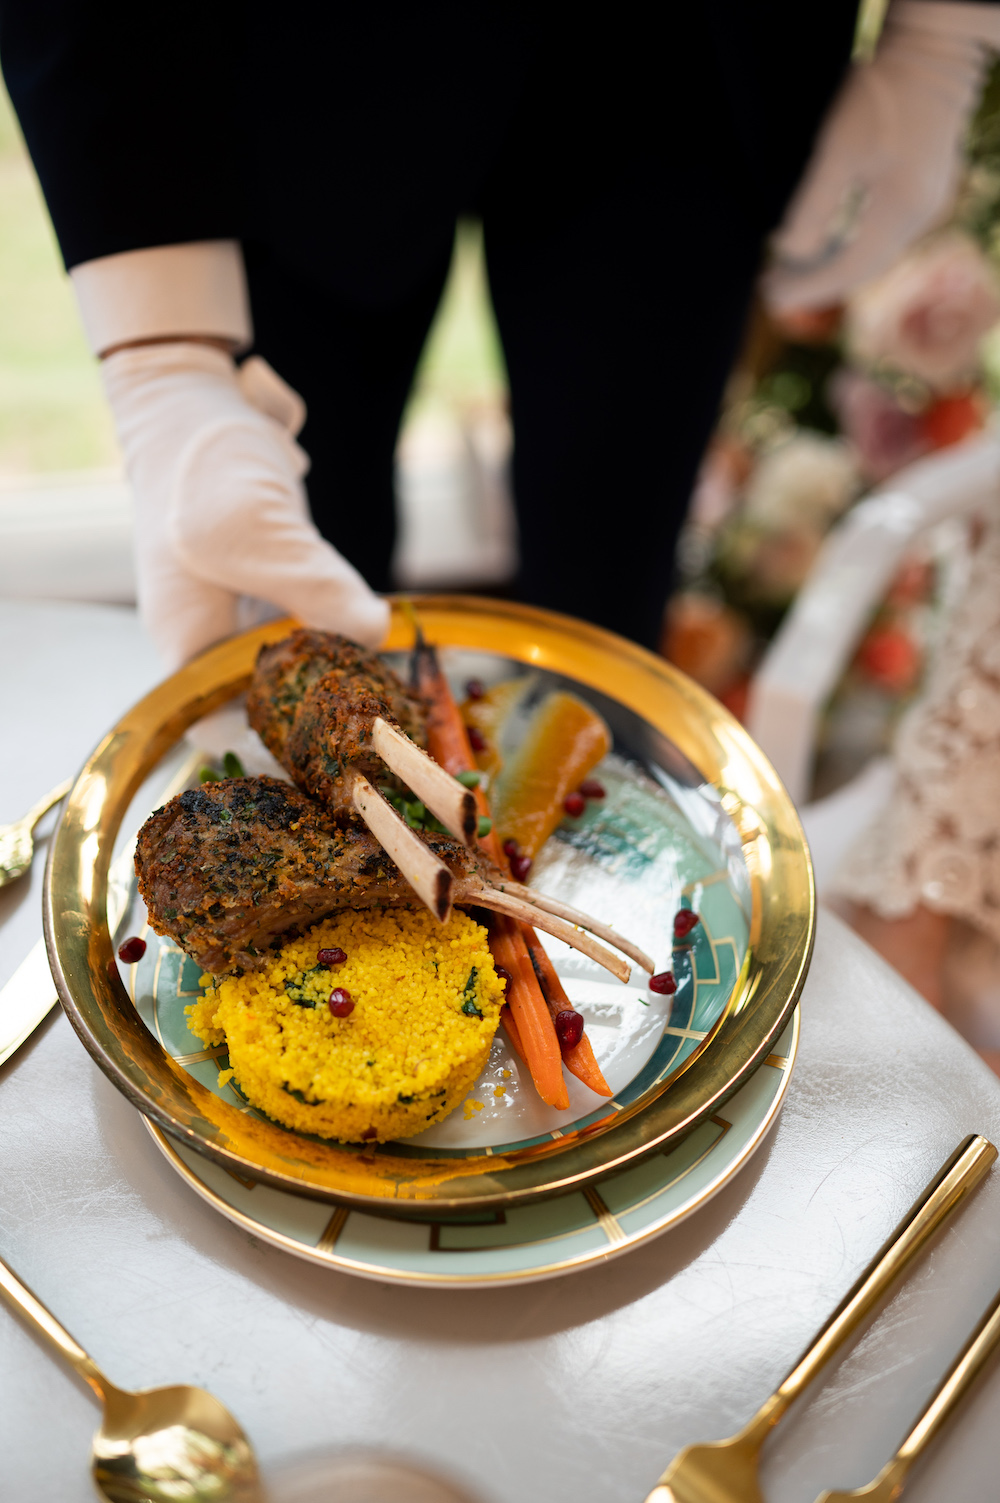 Lambchops with carrots and yellow rice by southern cadence cuisine.